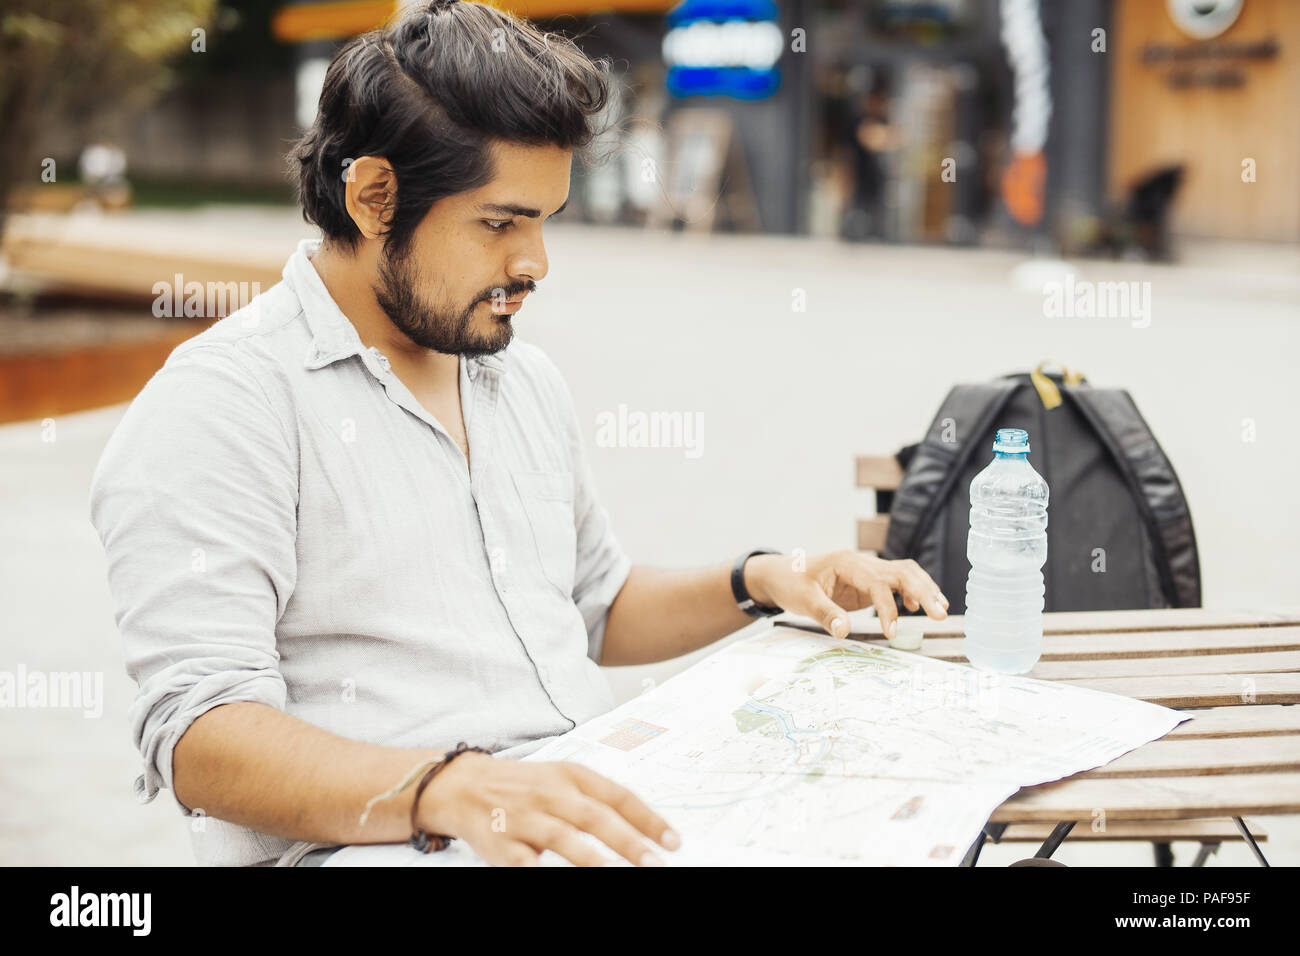 Man sitting at street cafe and looking at the map. Next to man is bottled water. - Stock Image